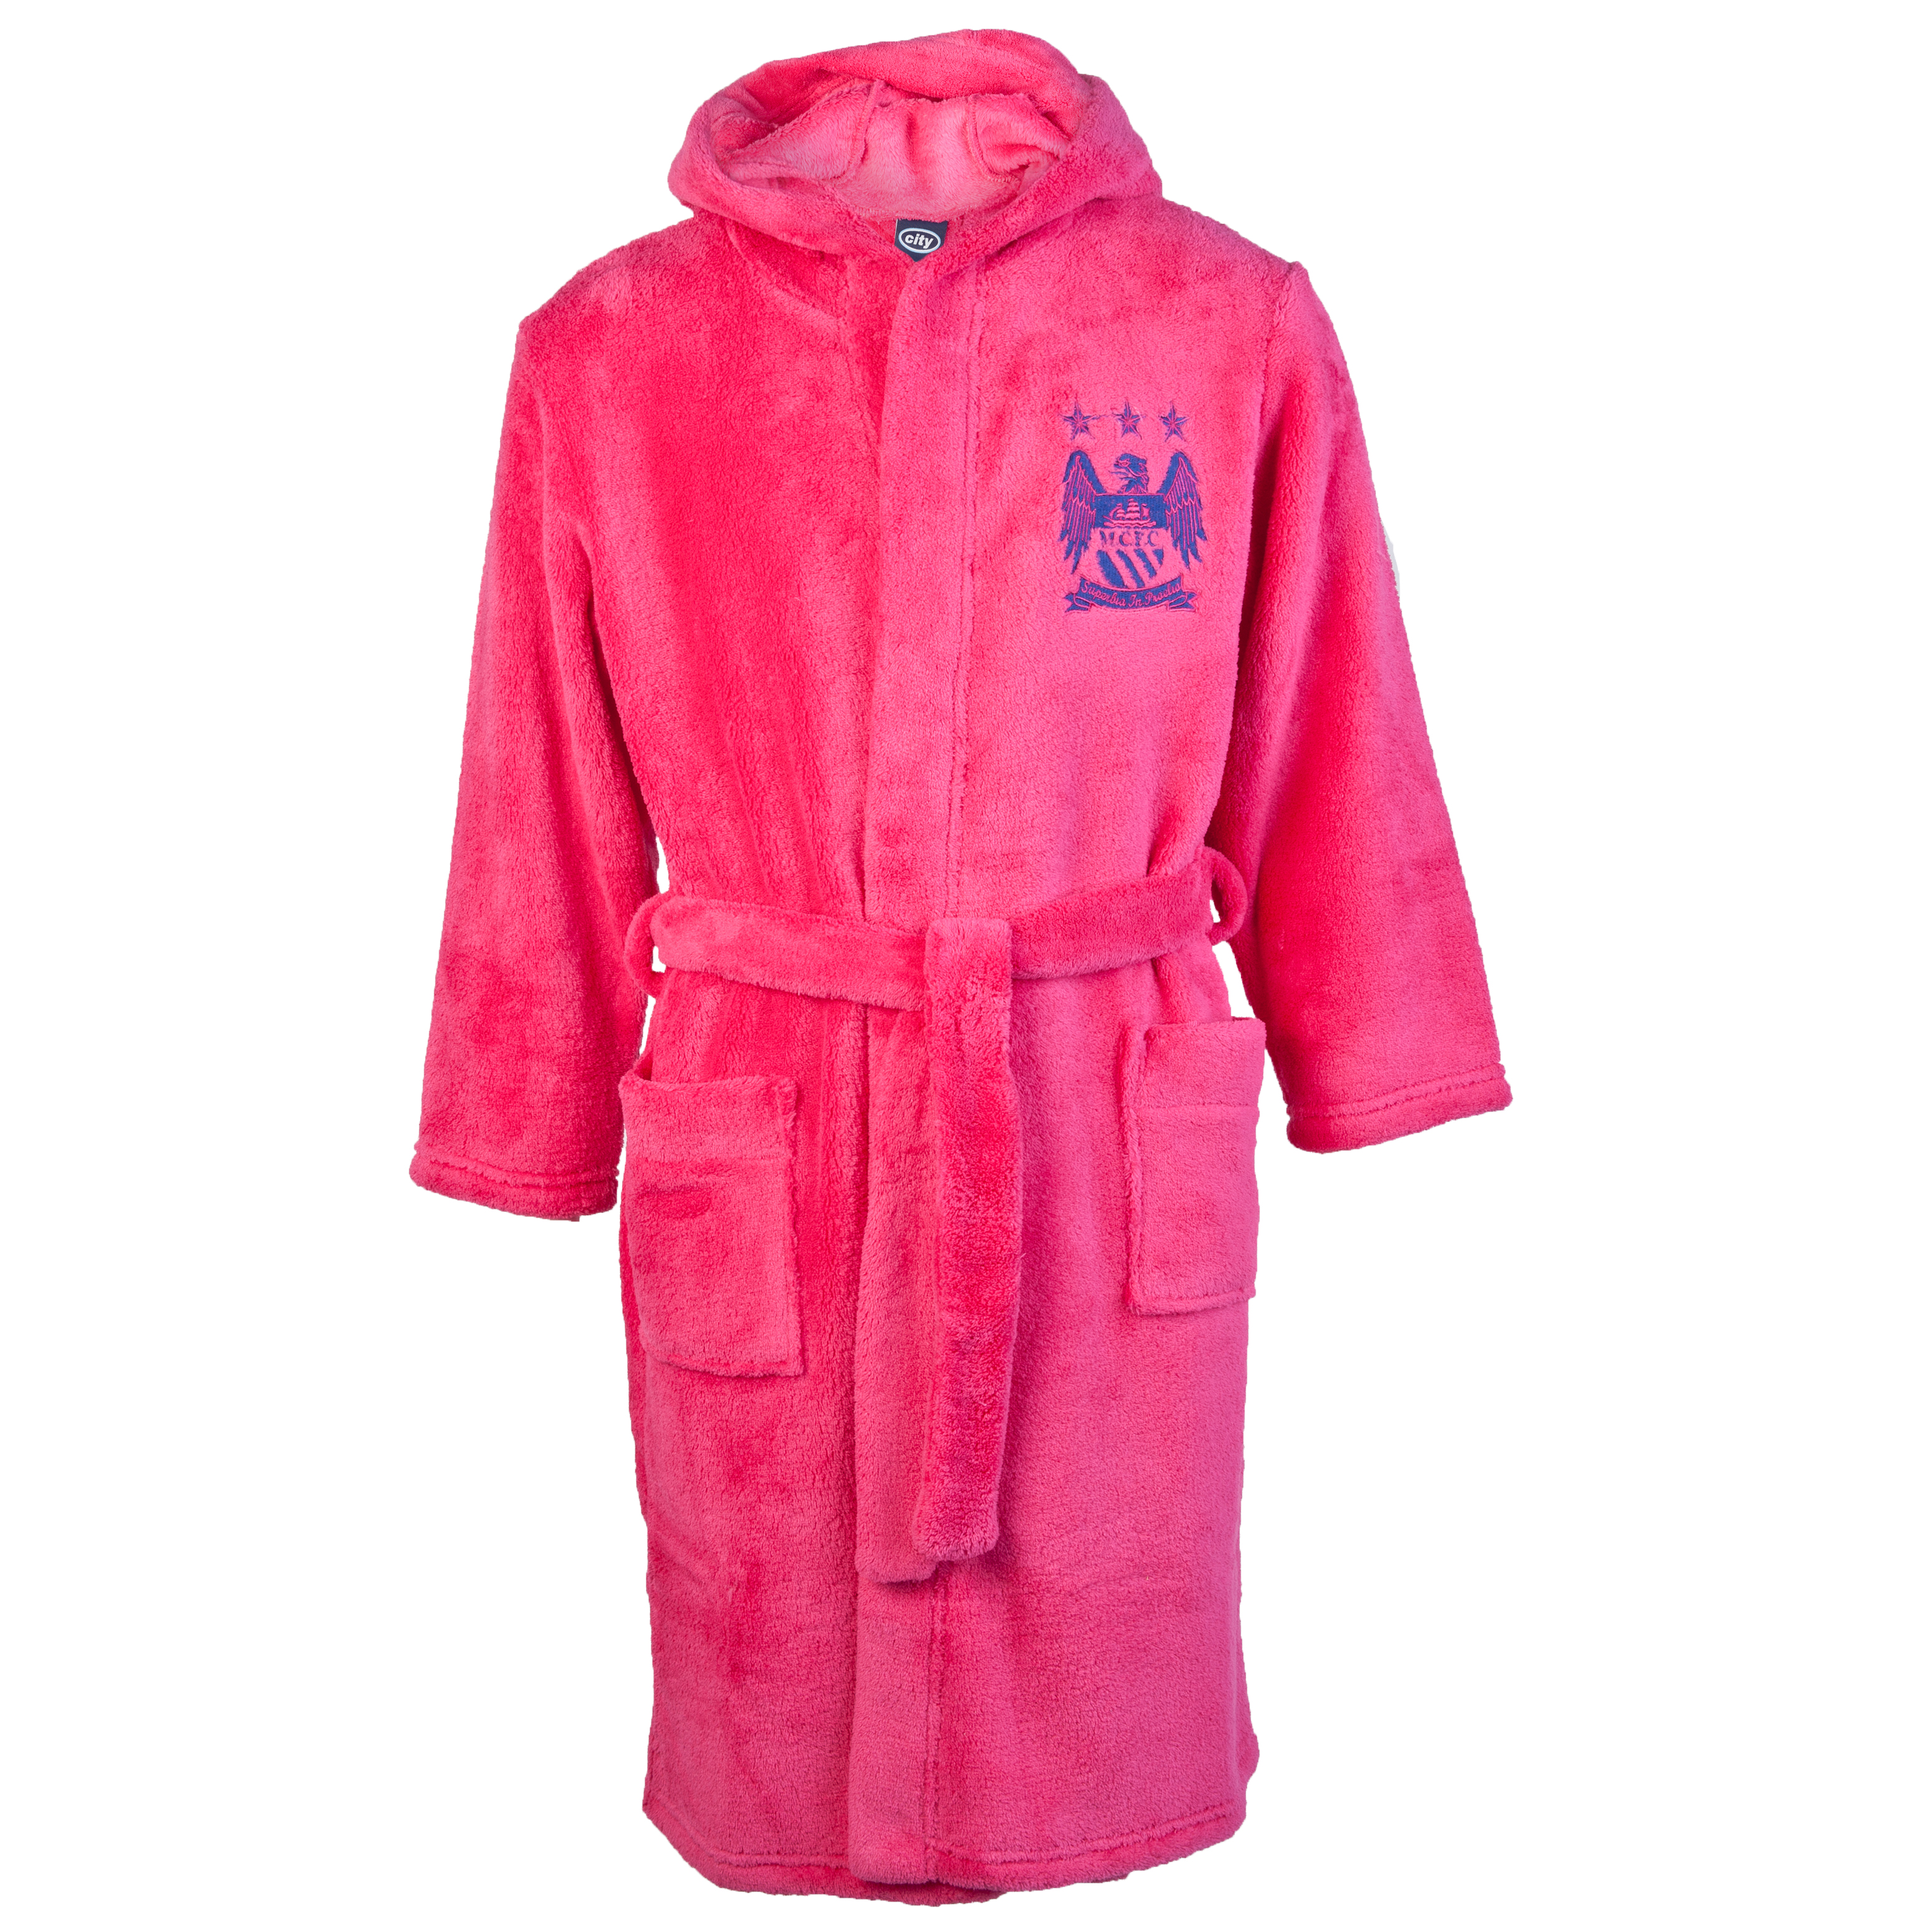 Manchester City Supersoft Robe - Pink - Girls